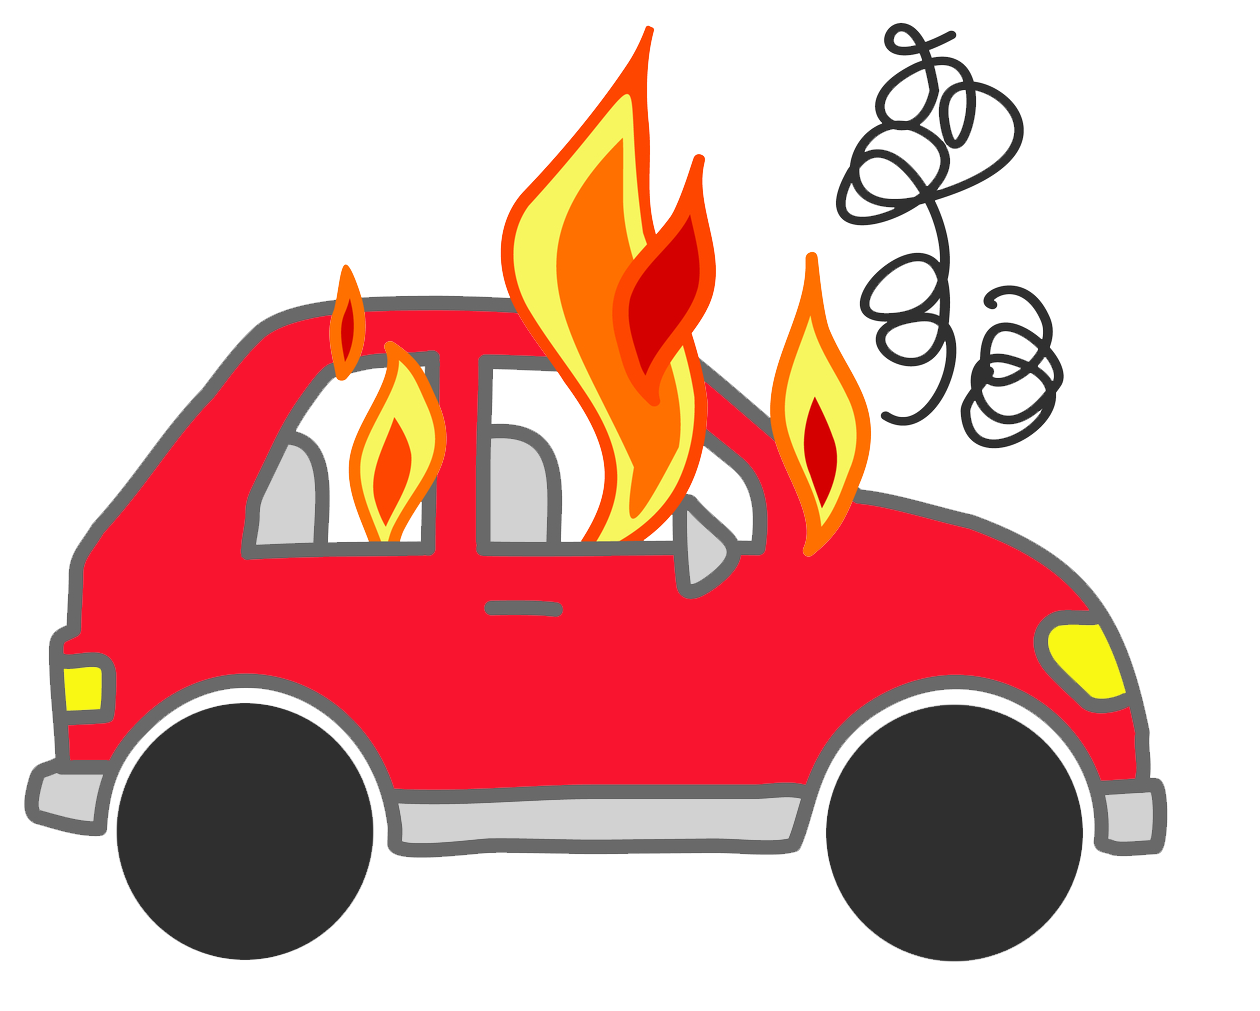 Cars on fire noxad. Youtube clipart car